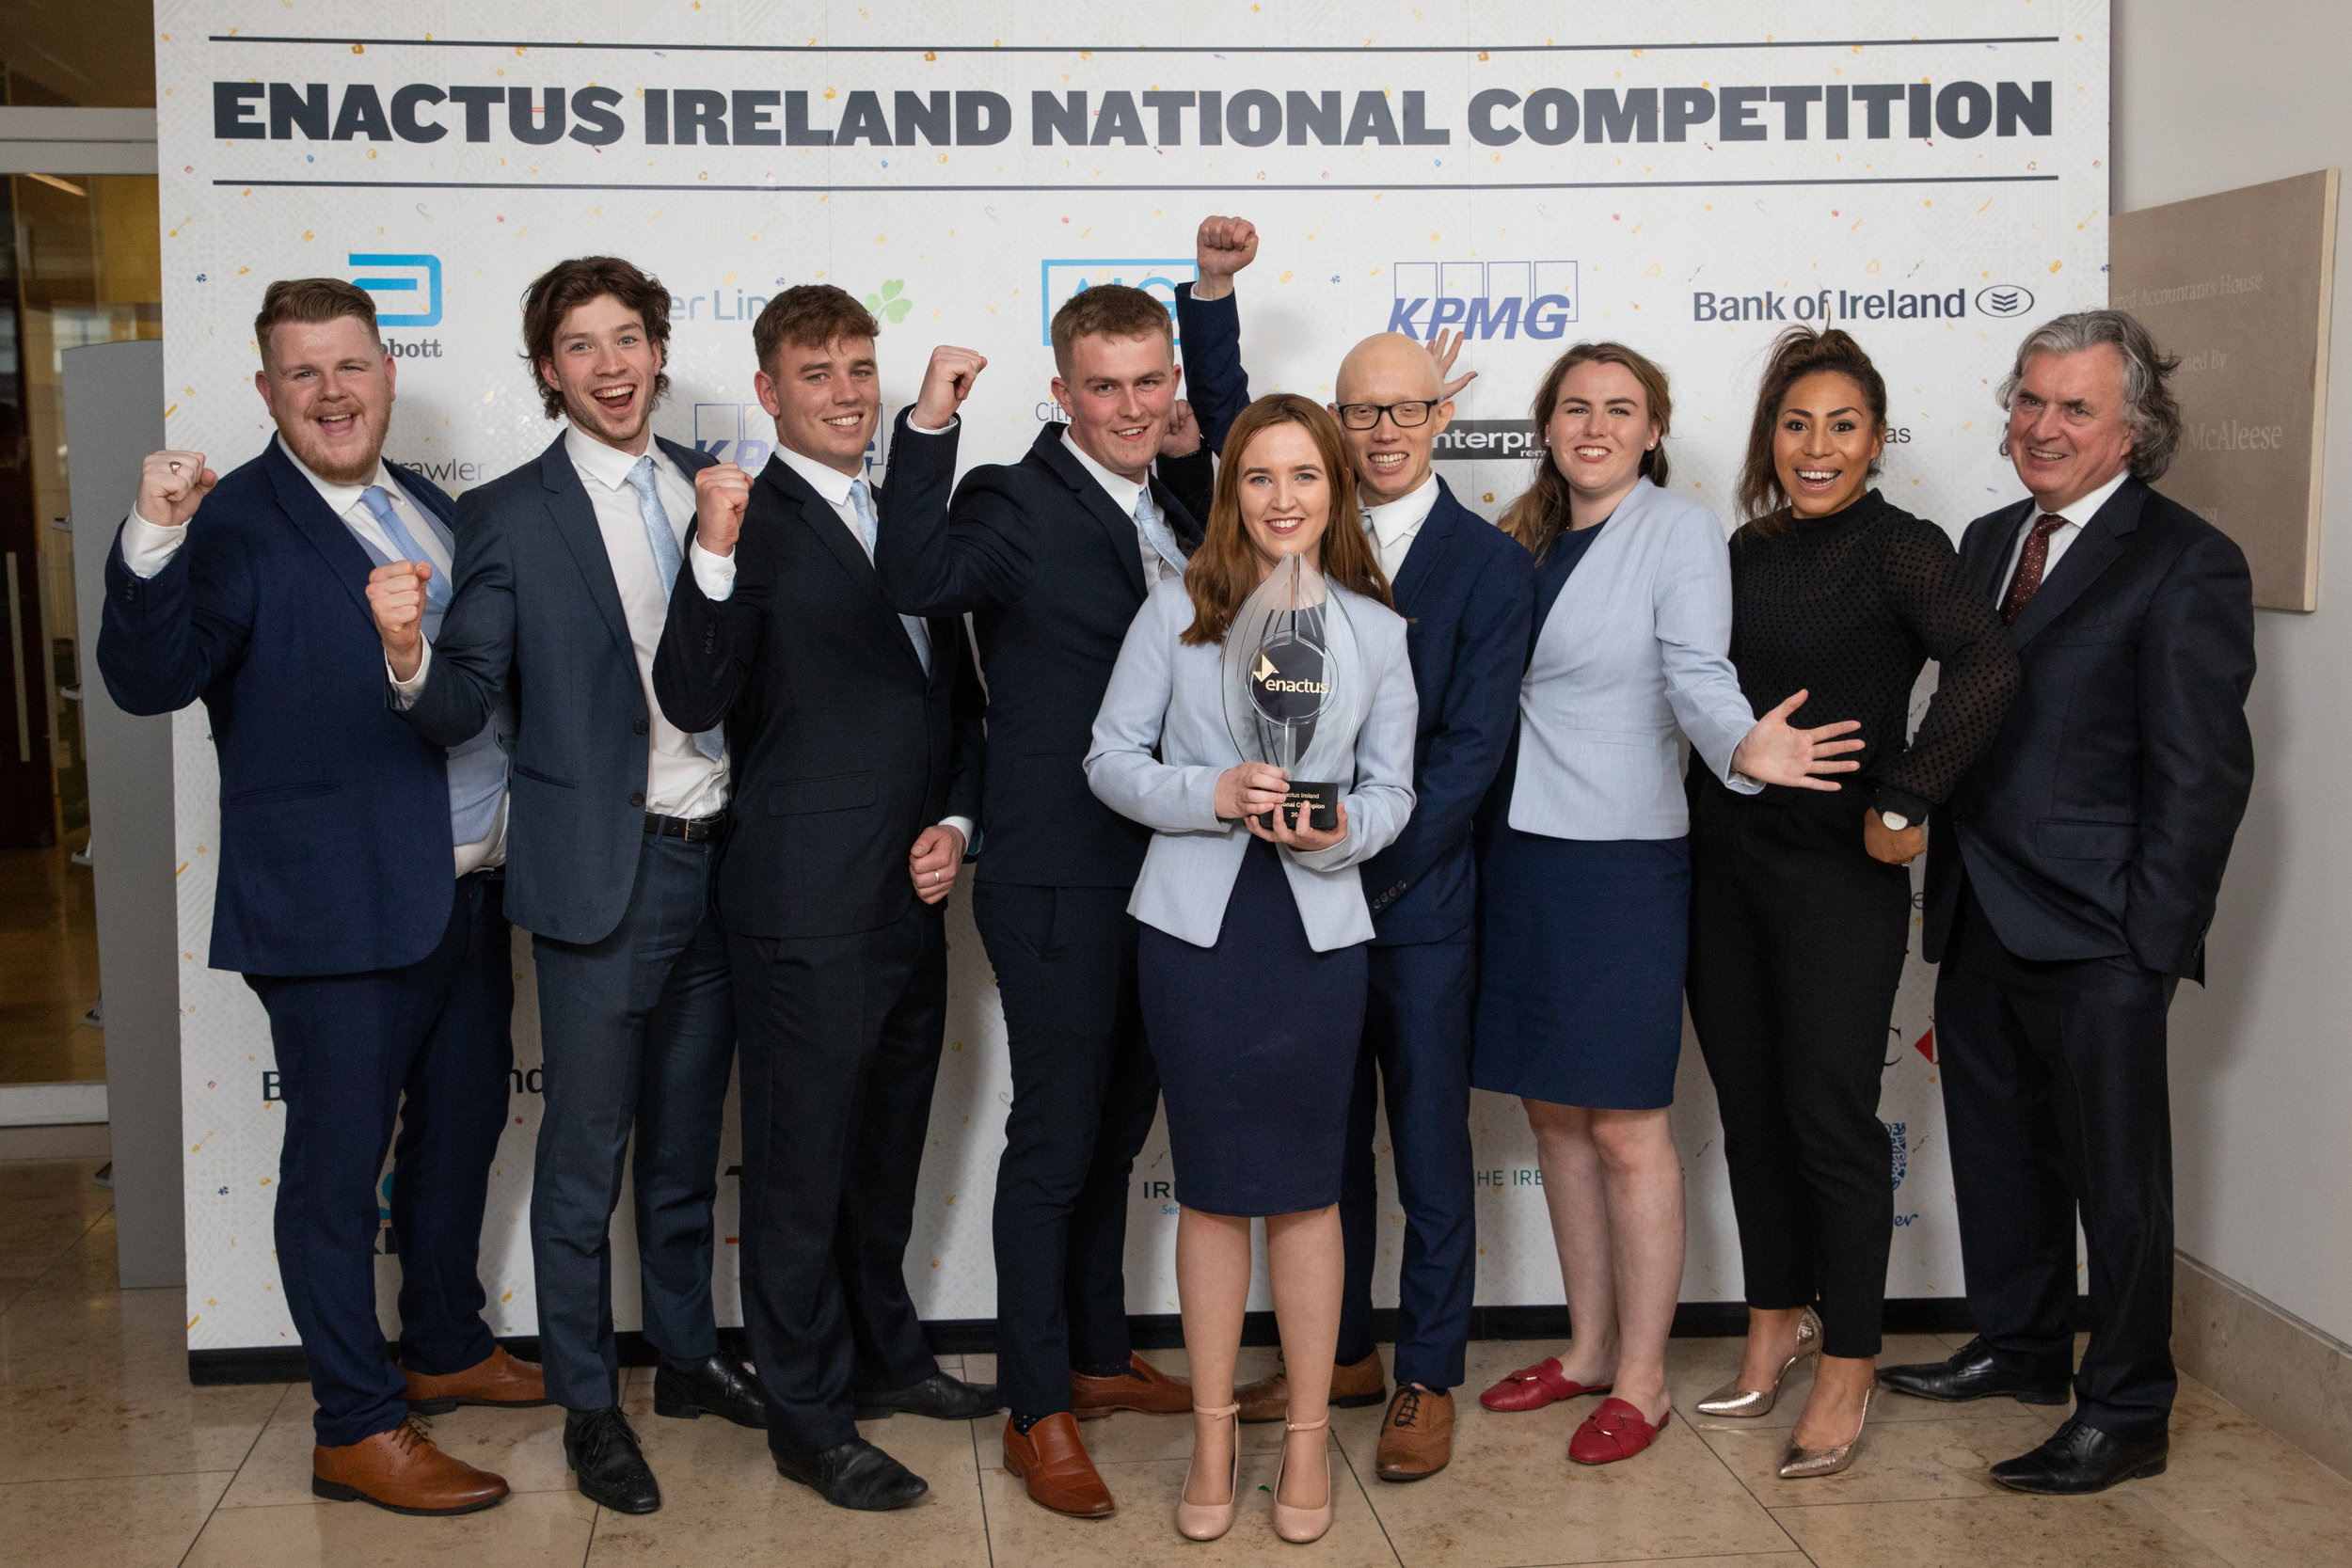 Enactus Ireland National Comp 2019 Winners-1 (1).jpg